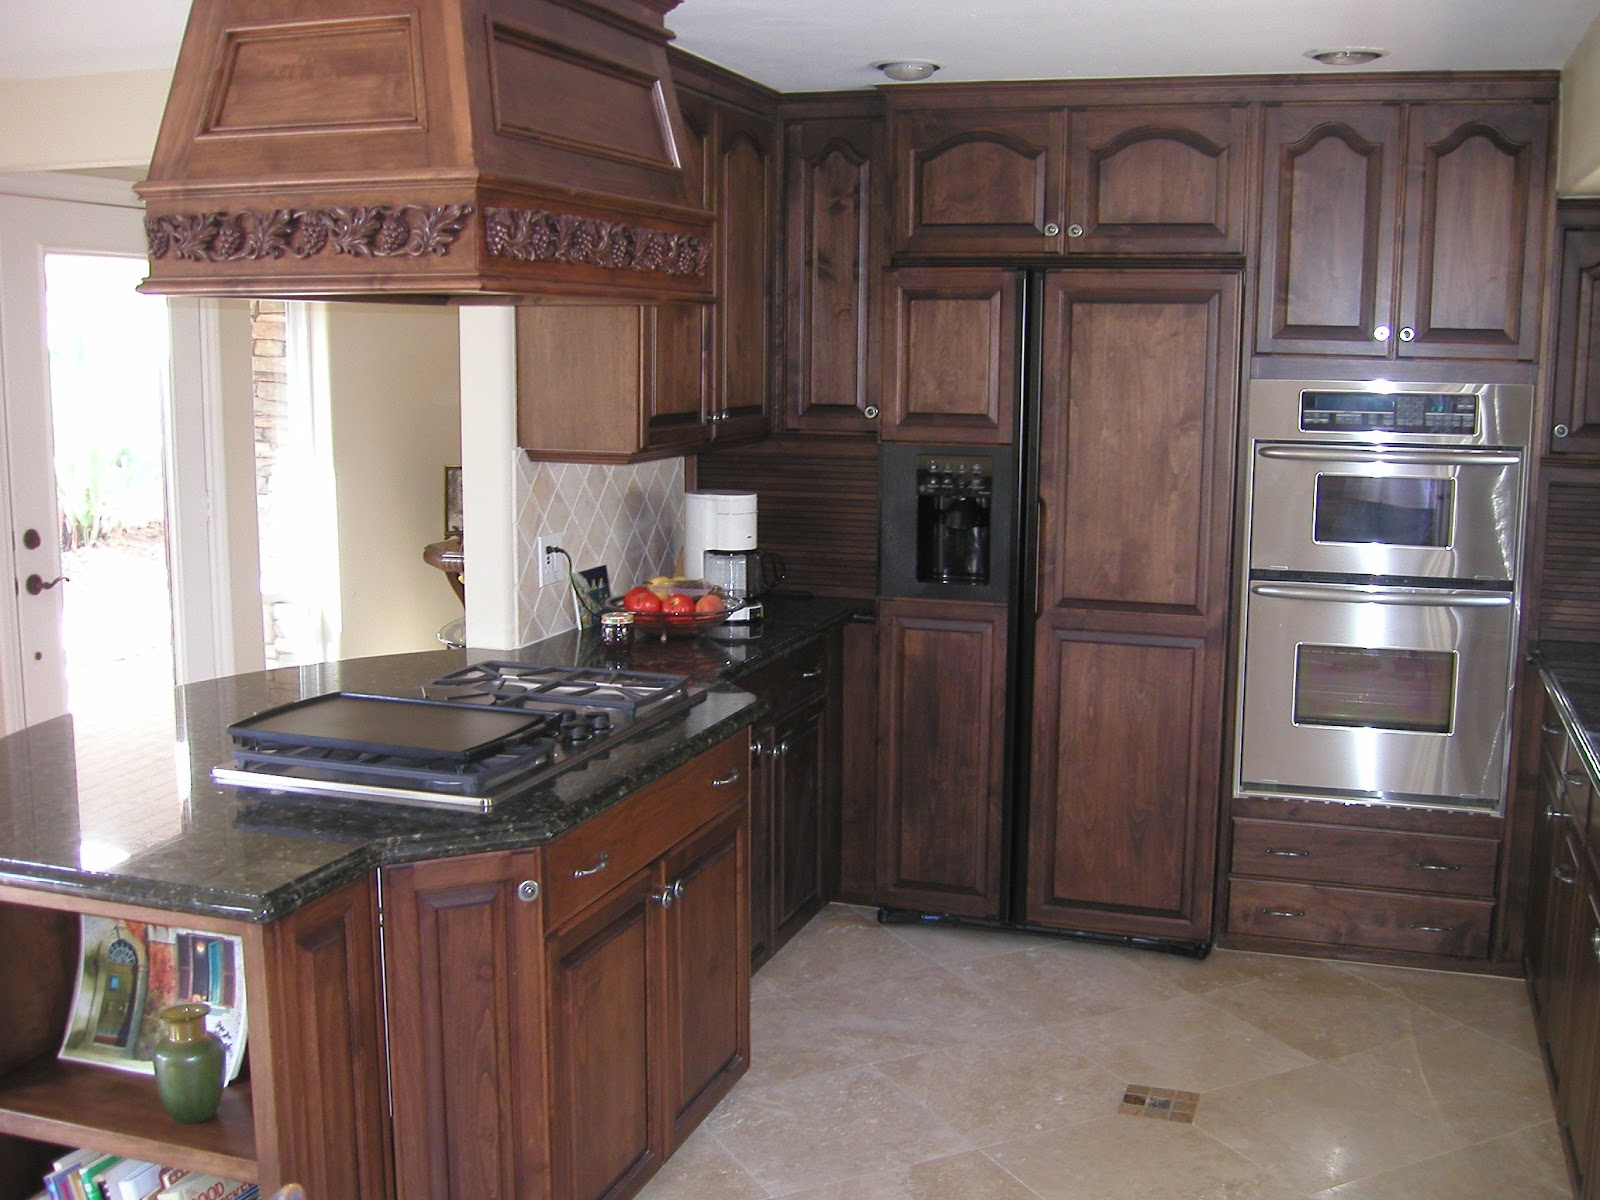 Home design ideas oak kitchen cabinets design ideas for Kitchen ideas with oak cabinets